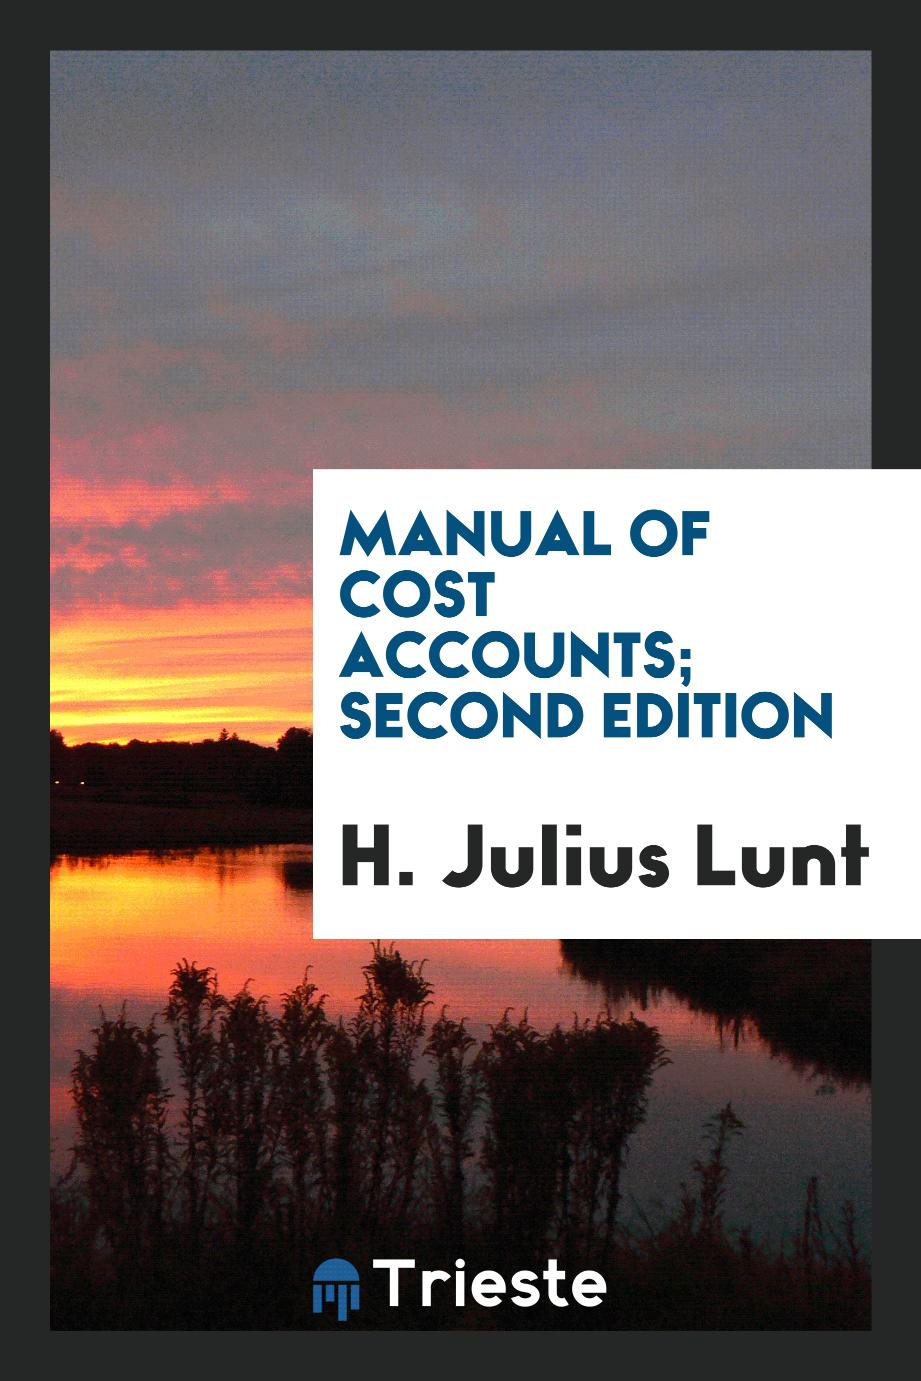 Manual of cost accounts; second edition